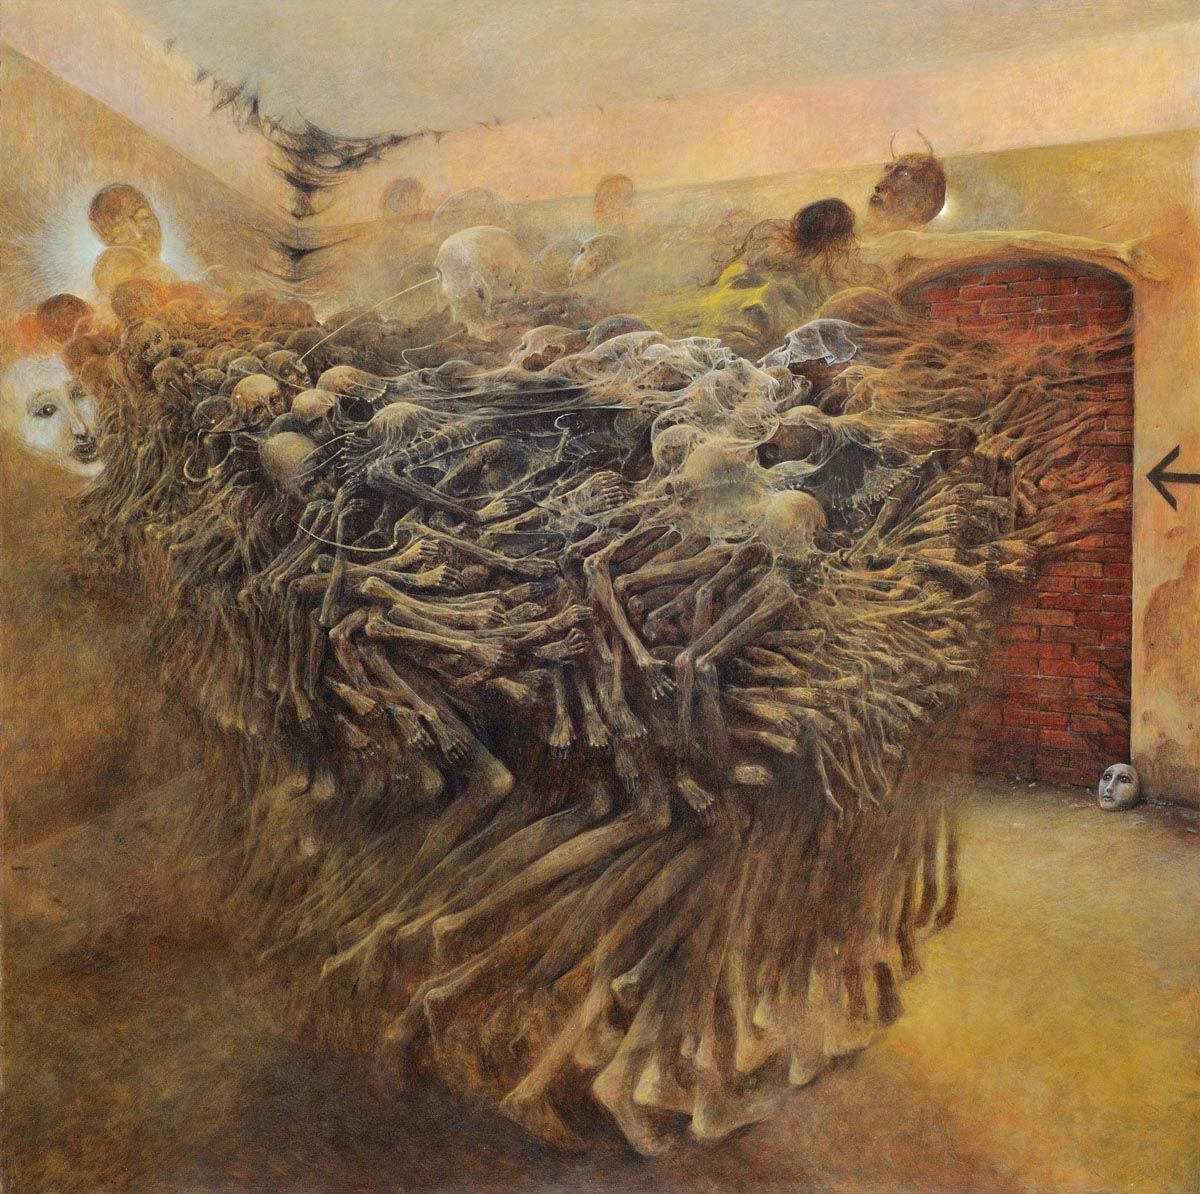 Reproduction of Zdzislaw Beksinski/'s painting High quality Print on canvas